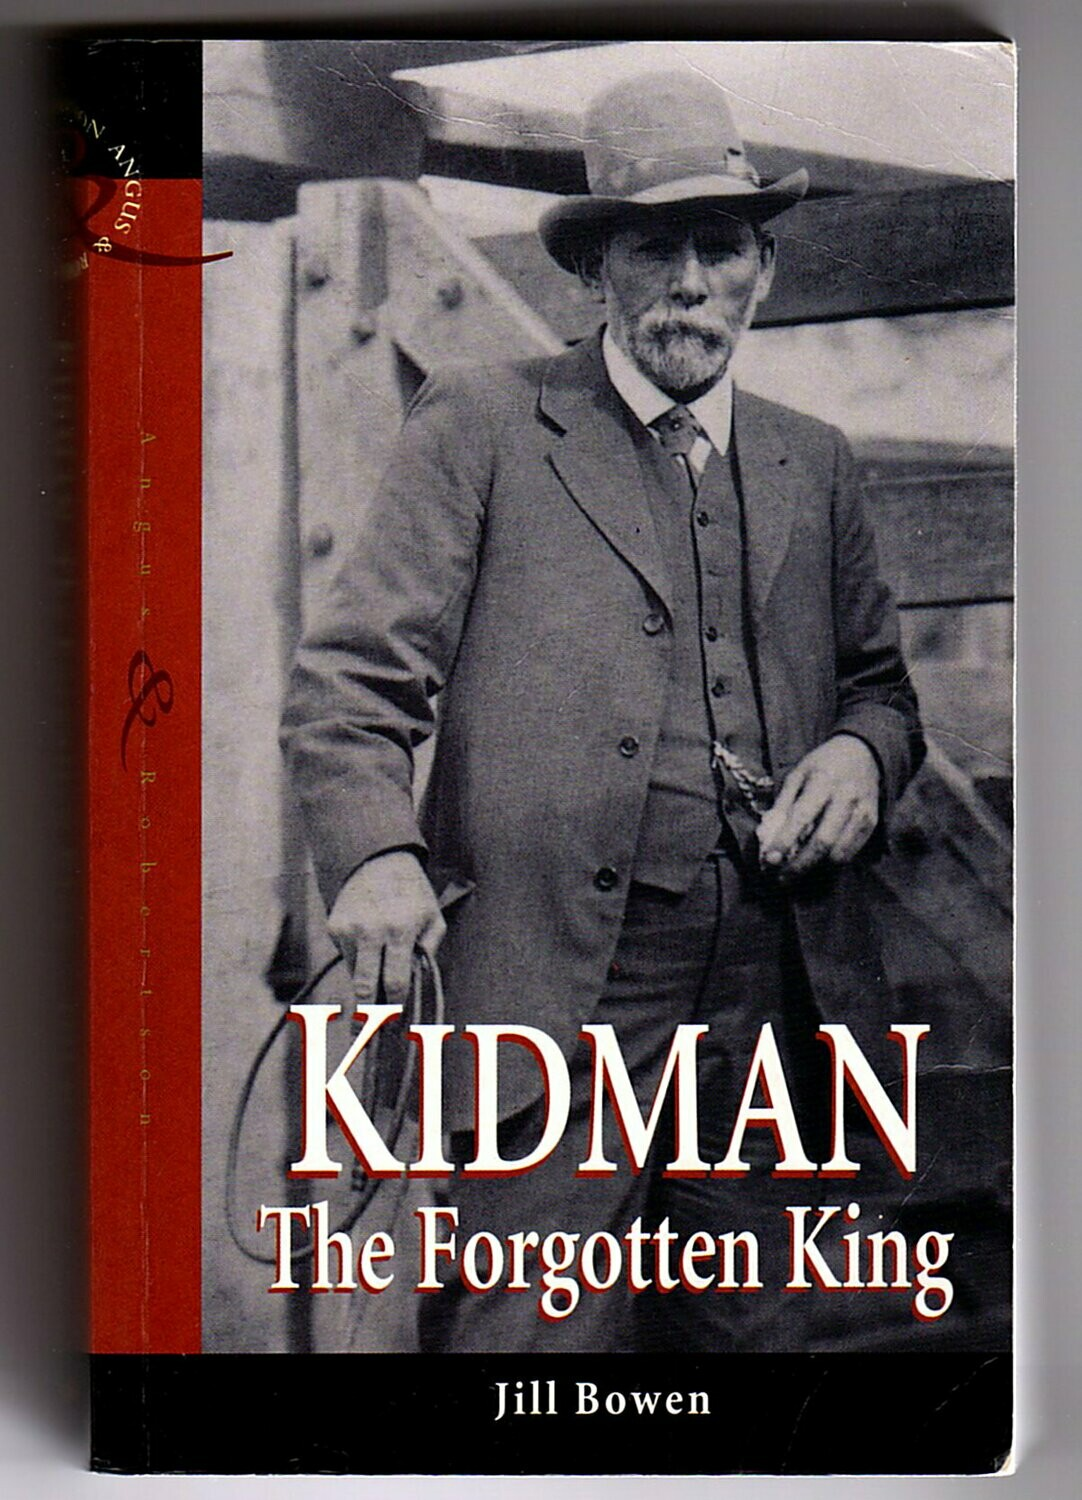 Kidman: The Forgotten King by Jill Bowen